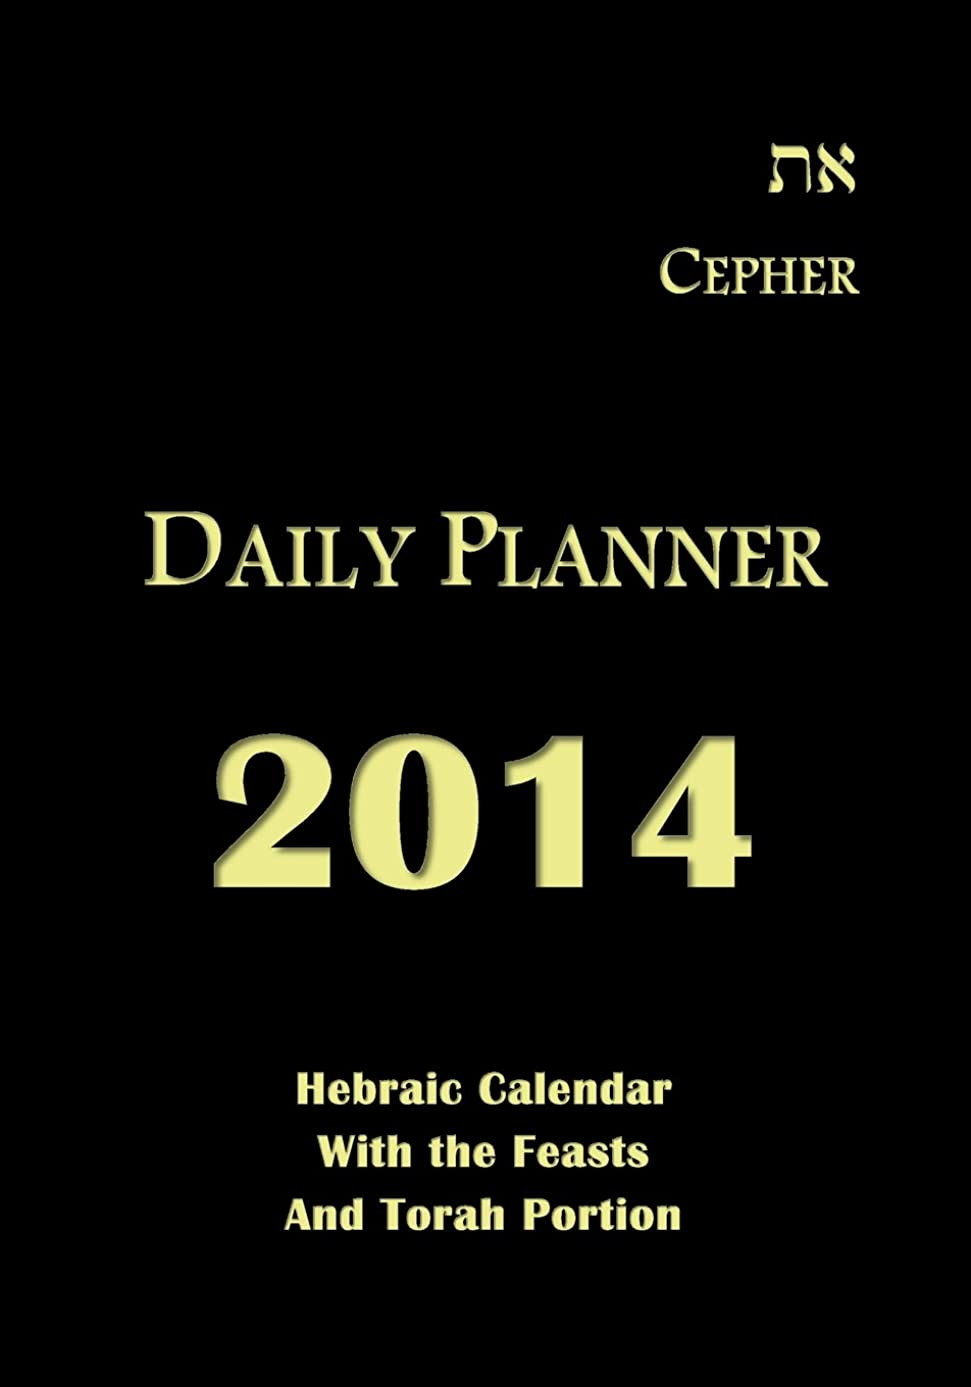 Cepher Daily Planner 2014: Hebraic Calendar with the Feasts and Torah Portion